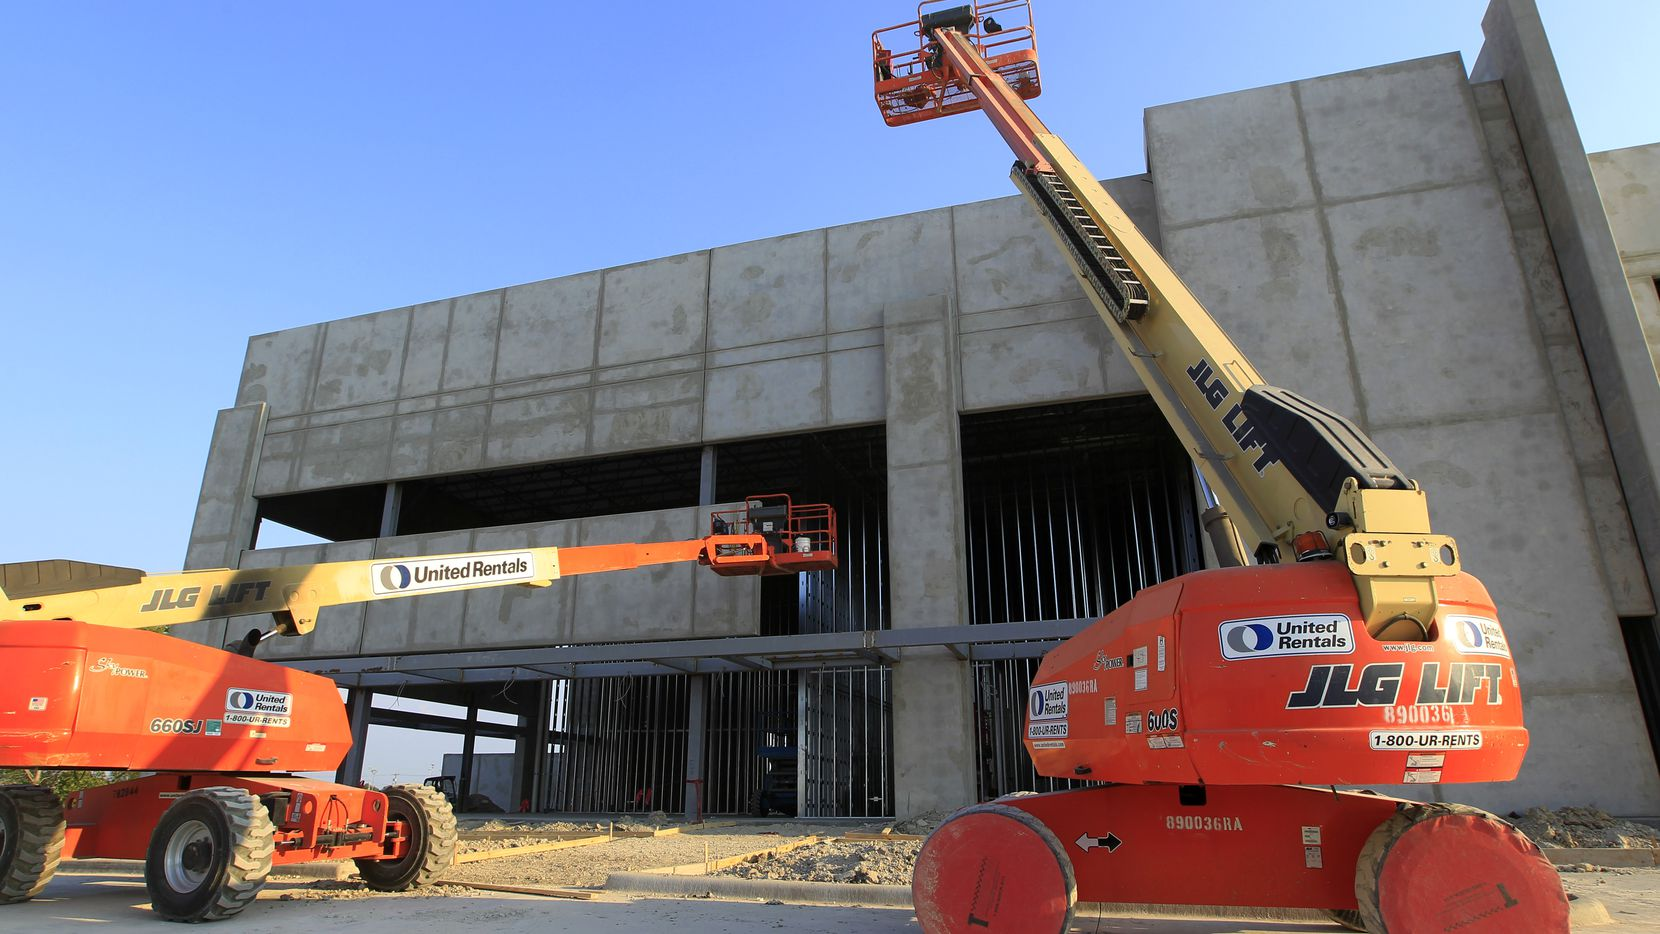 More than 6 million square feet of warehouse space is under construction in southern Dallas County.